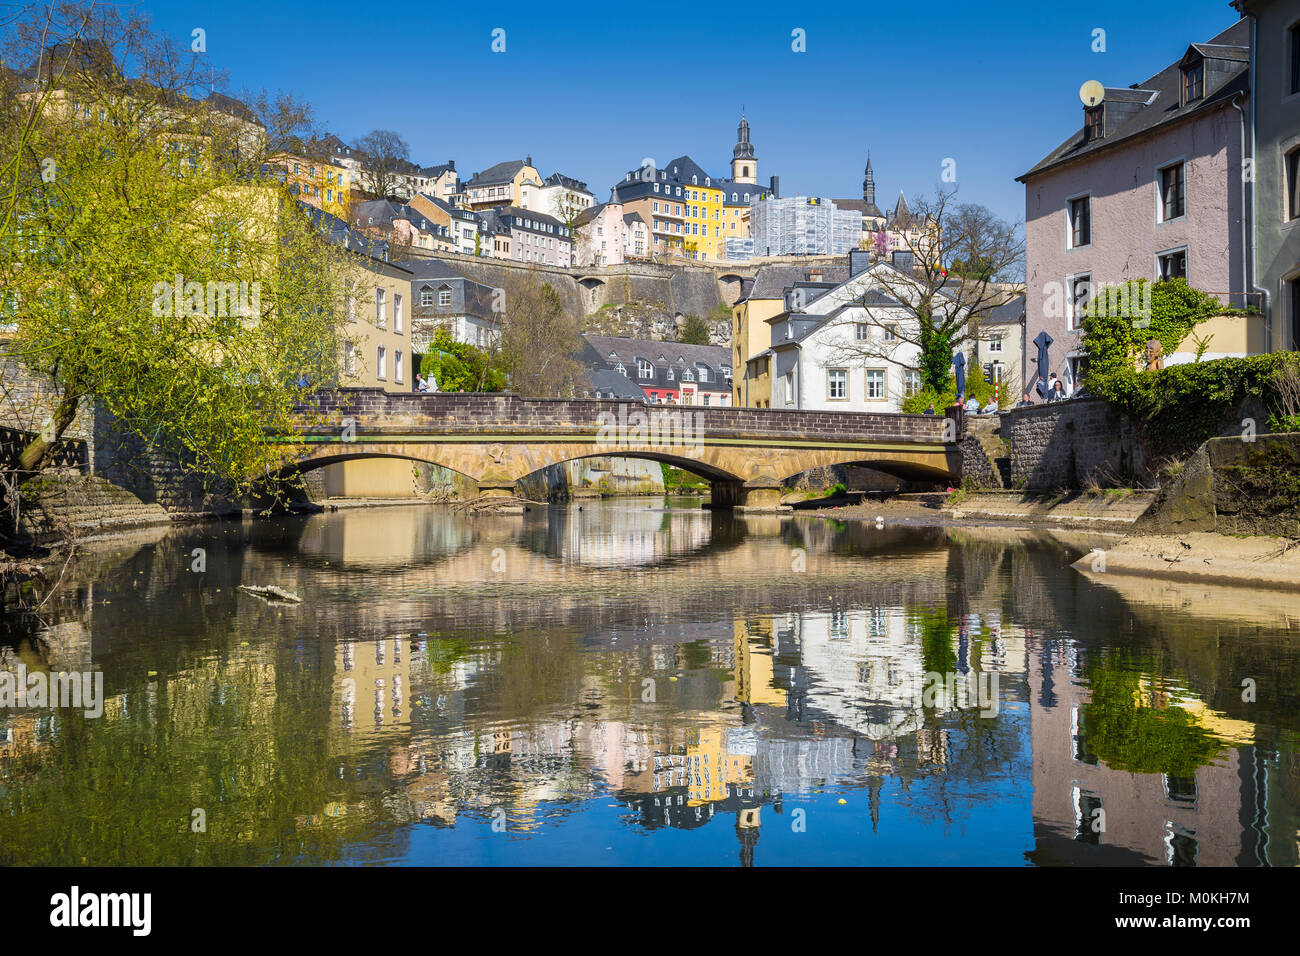 Classic view of the famous old town of Luxembourg City reflecting in idyllic Alzette river on a beautiful sunny - Stock Image